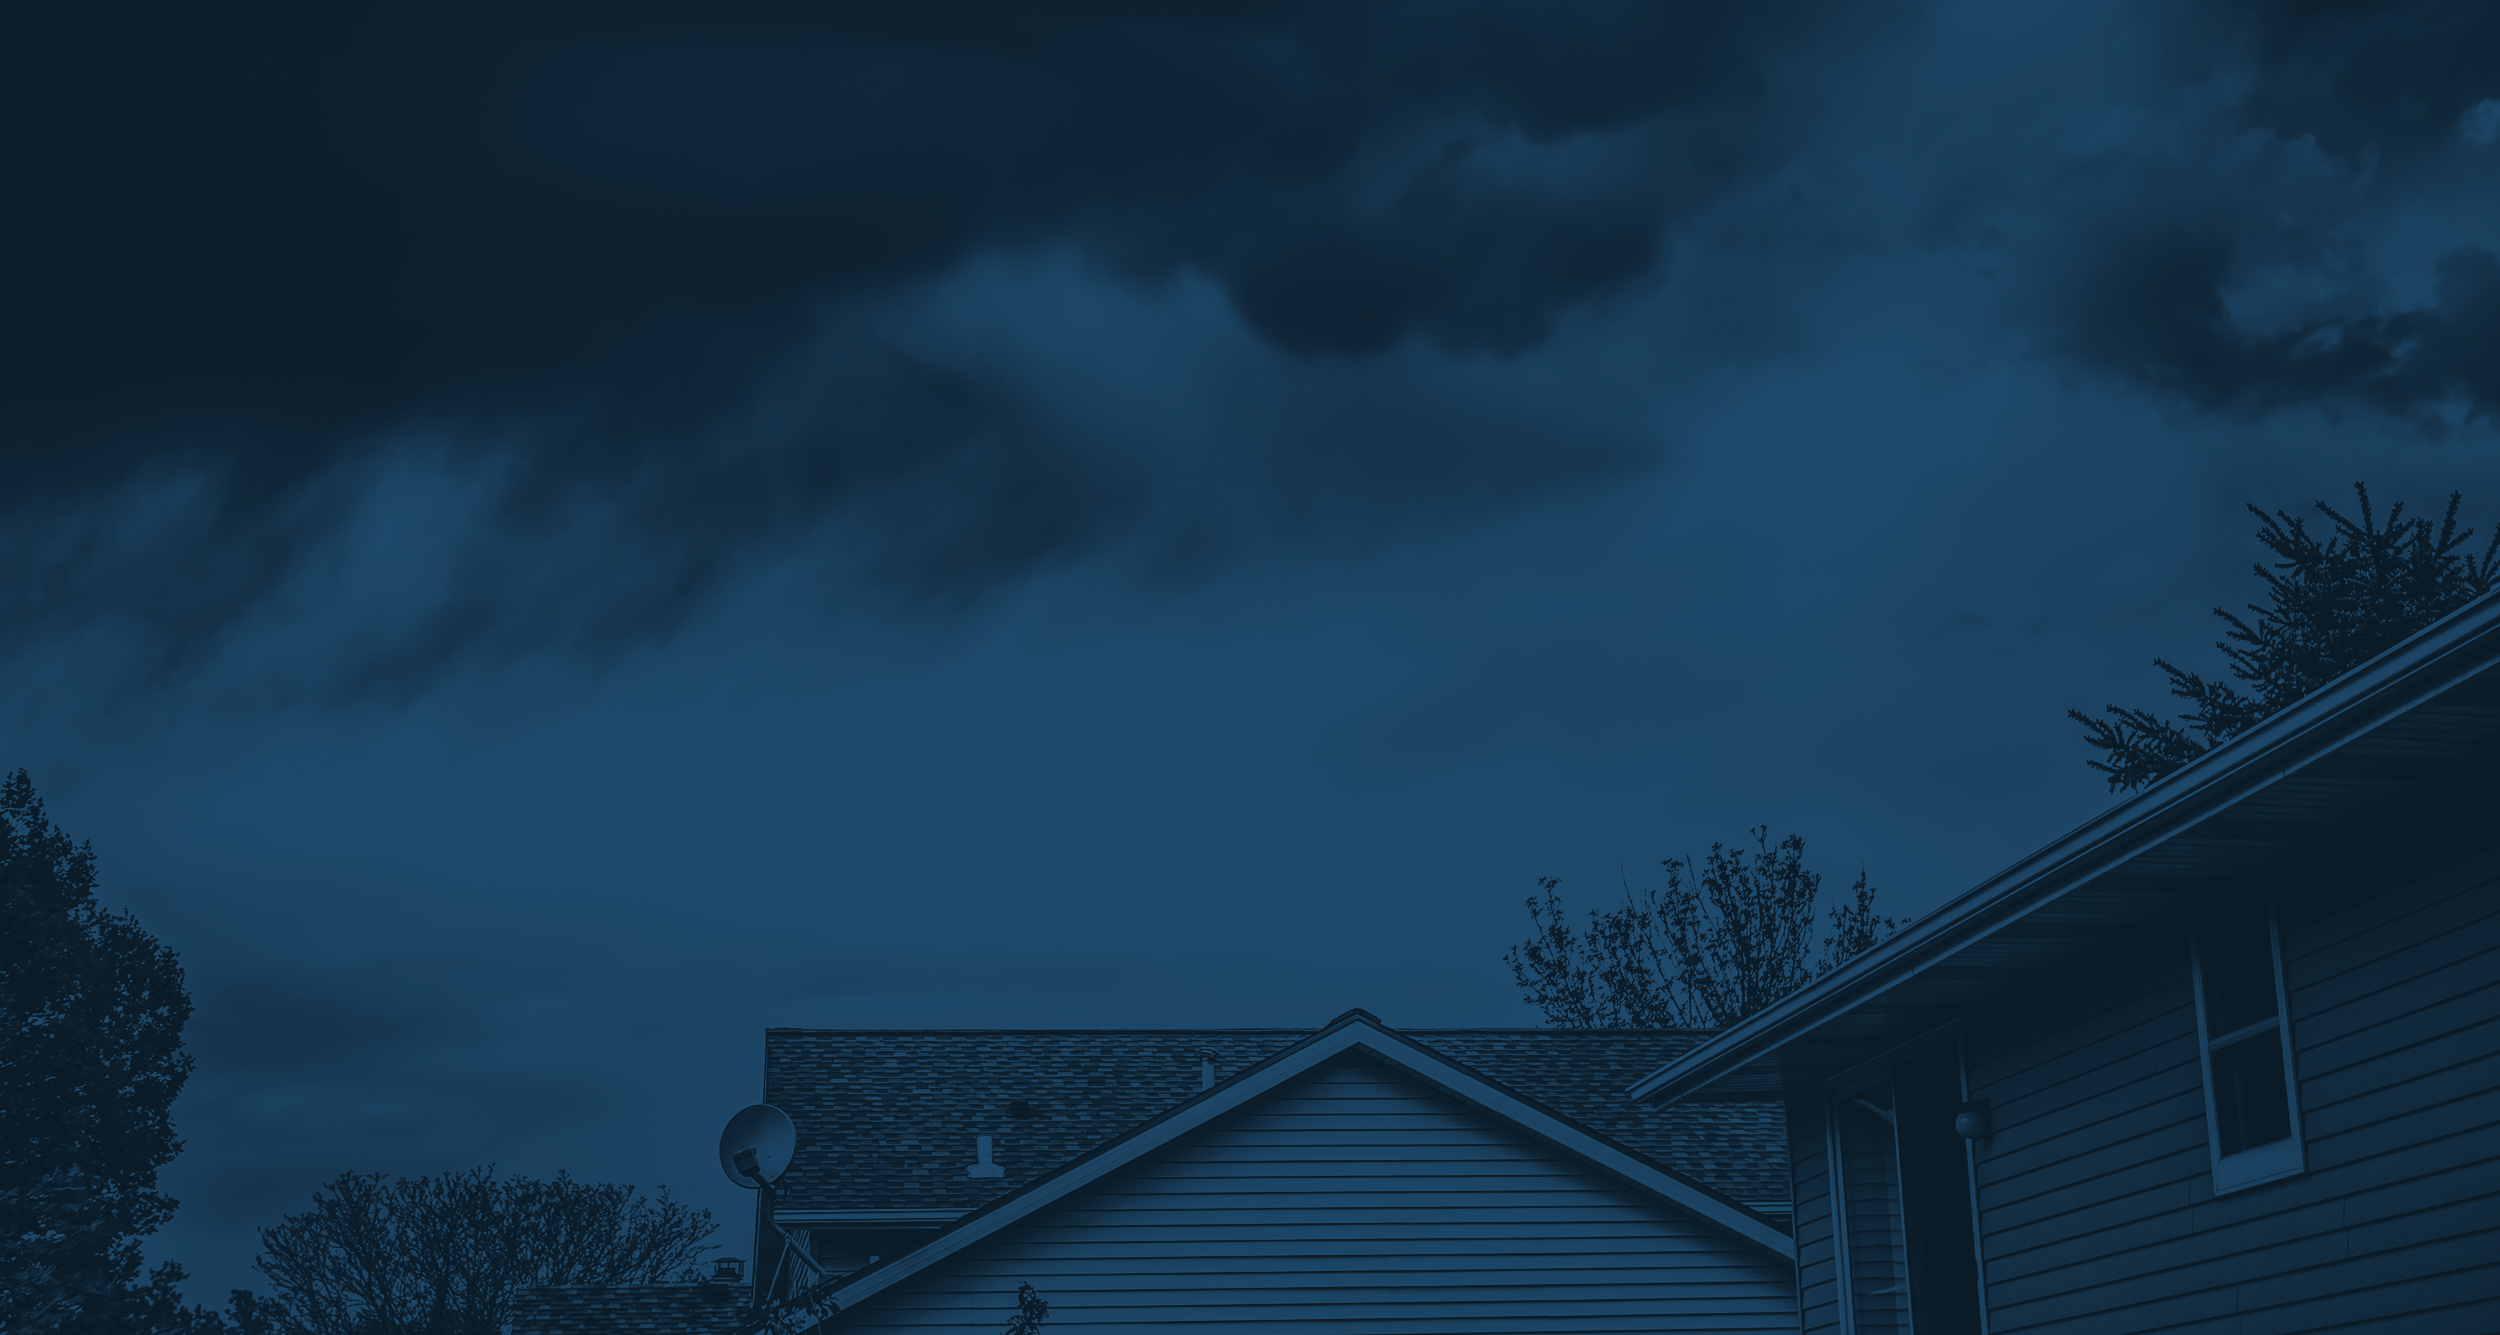 3 Ways to Maximize Efficiency During Storm Season